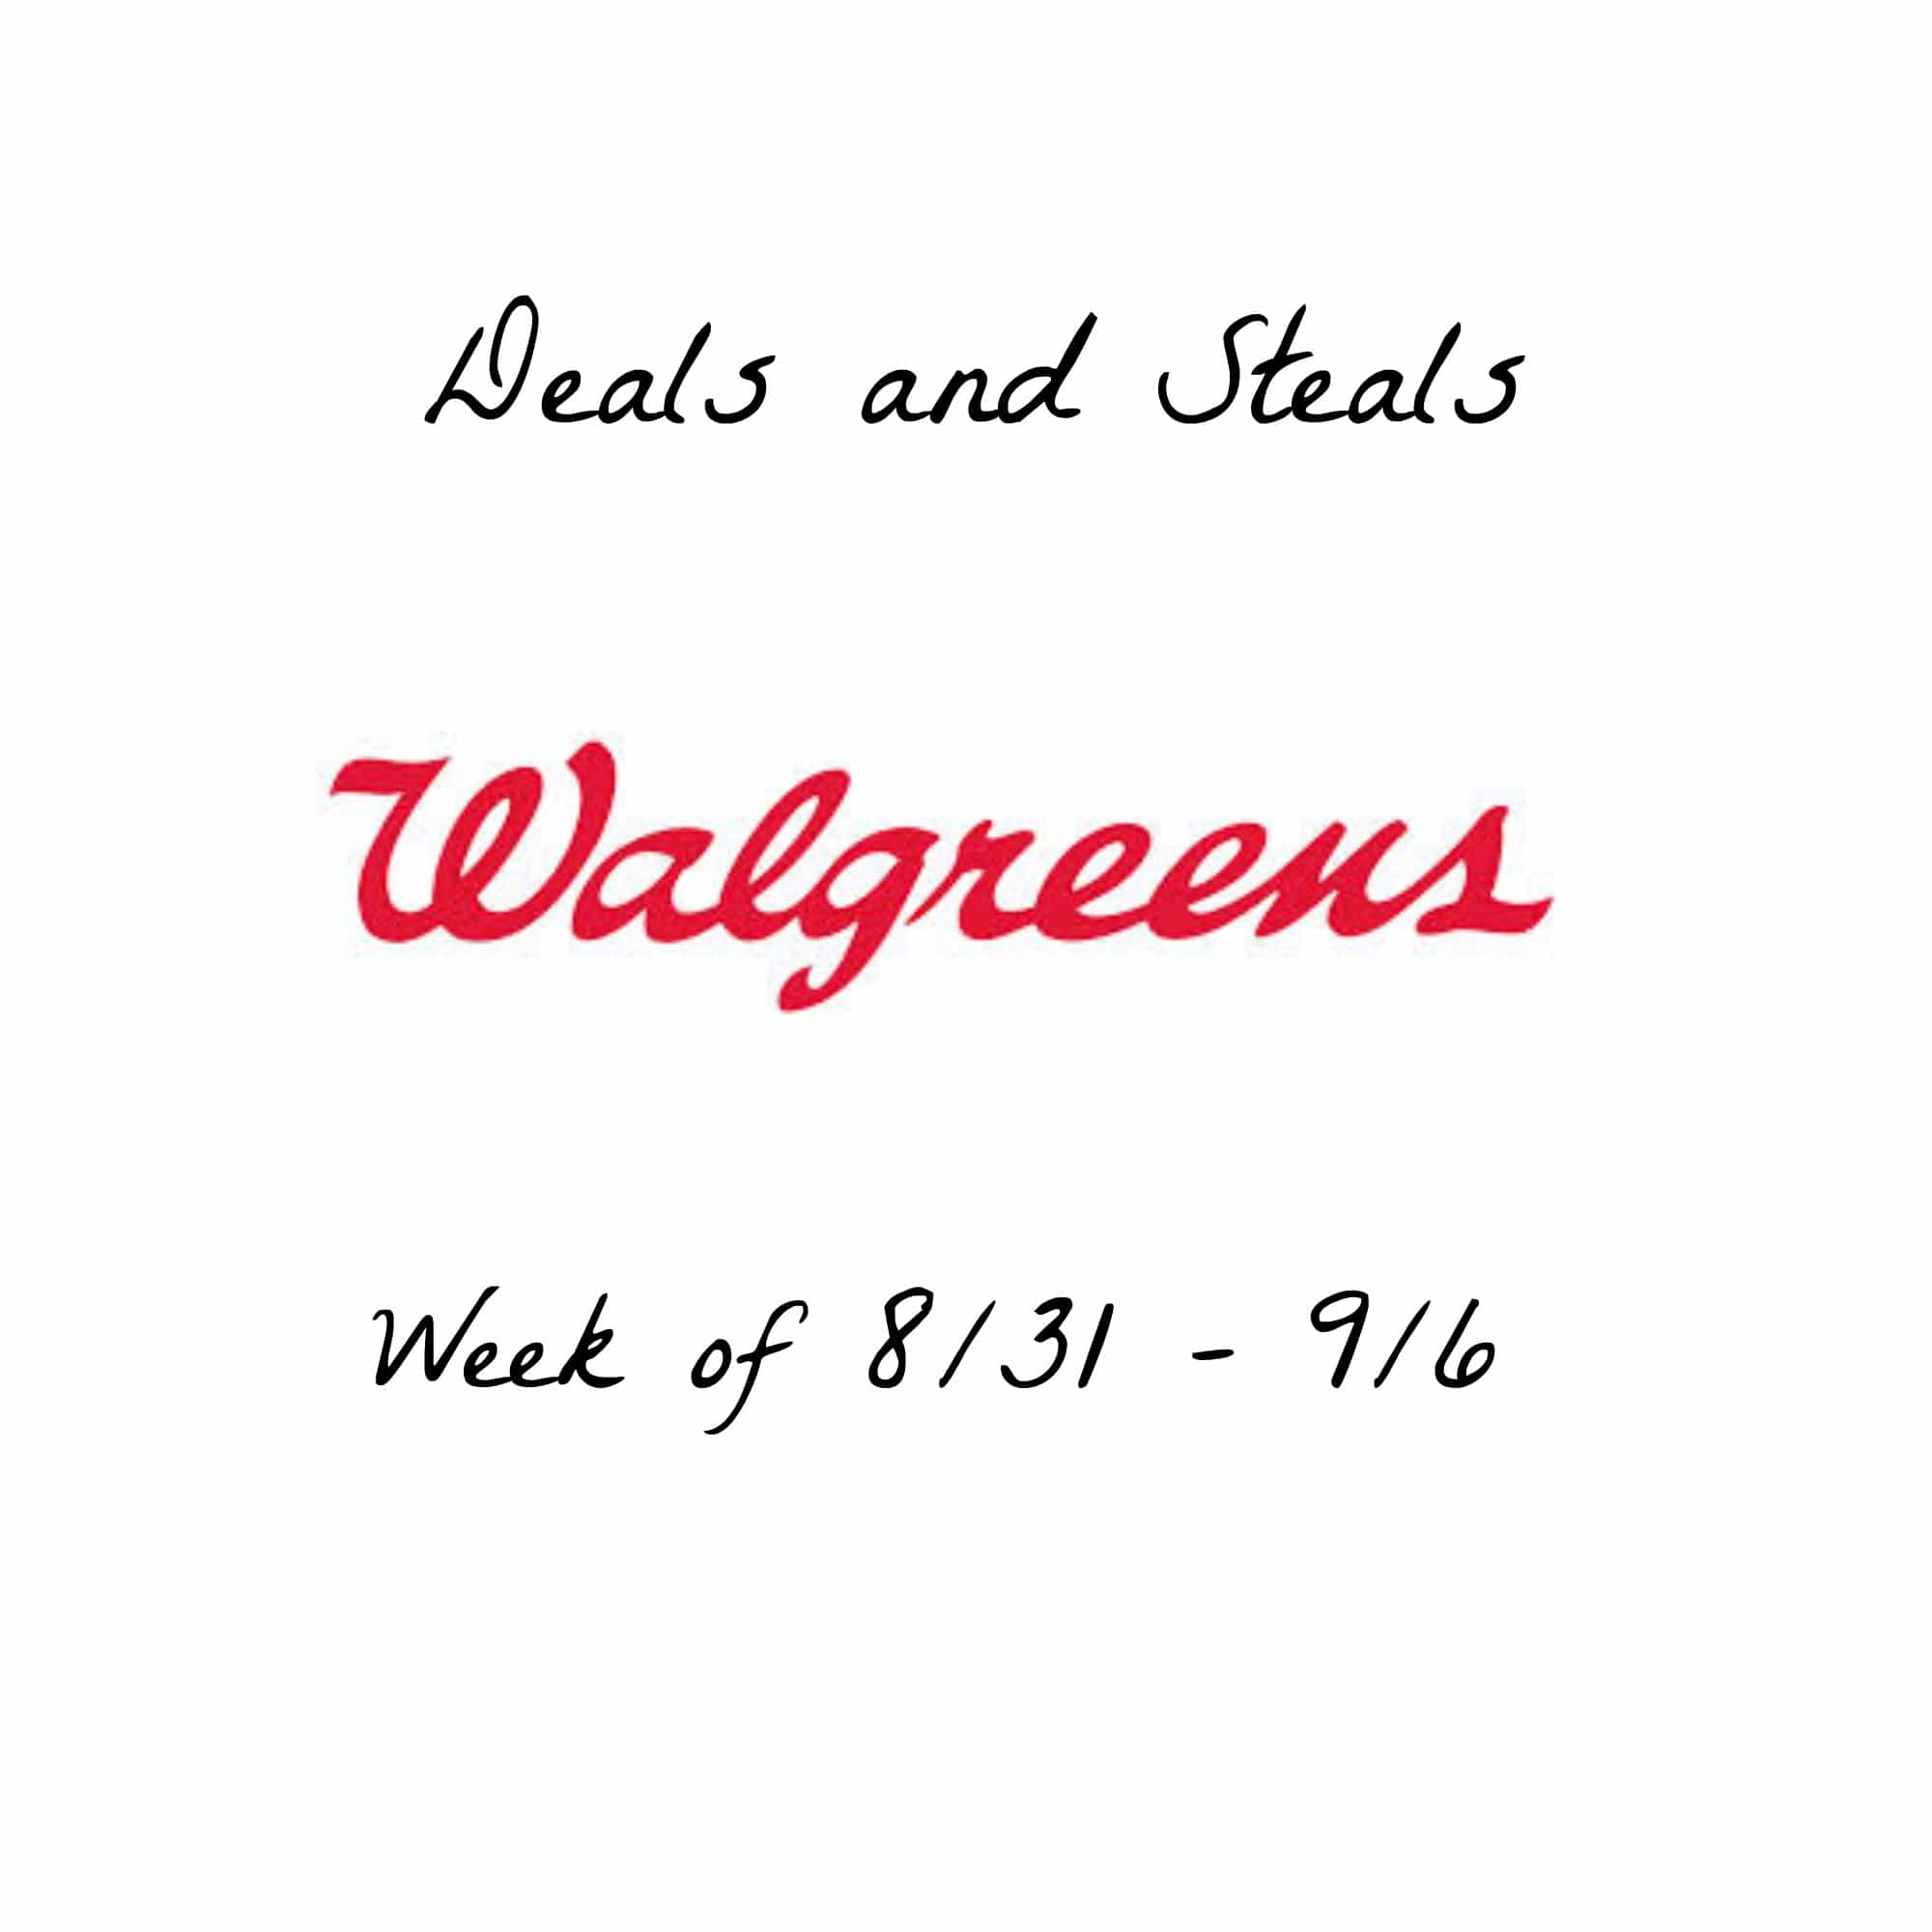 Walgreens Deals and Steals Week of 8/31 – 9/6